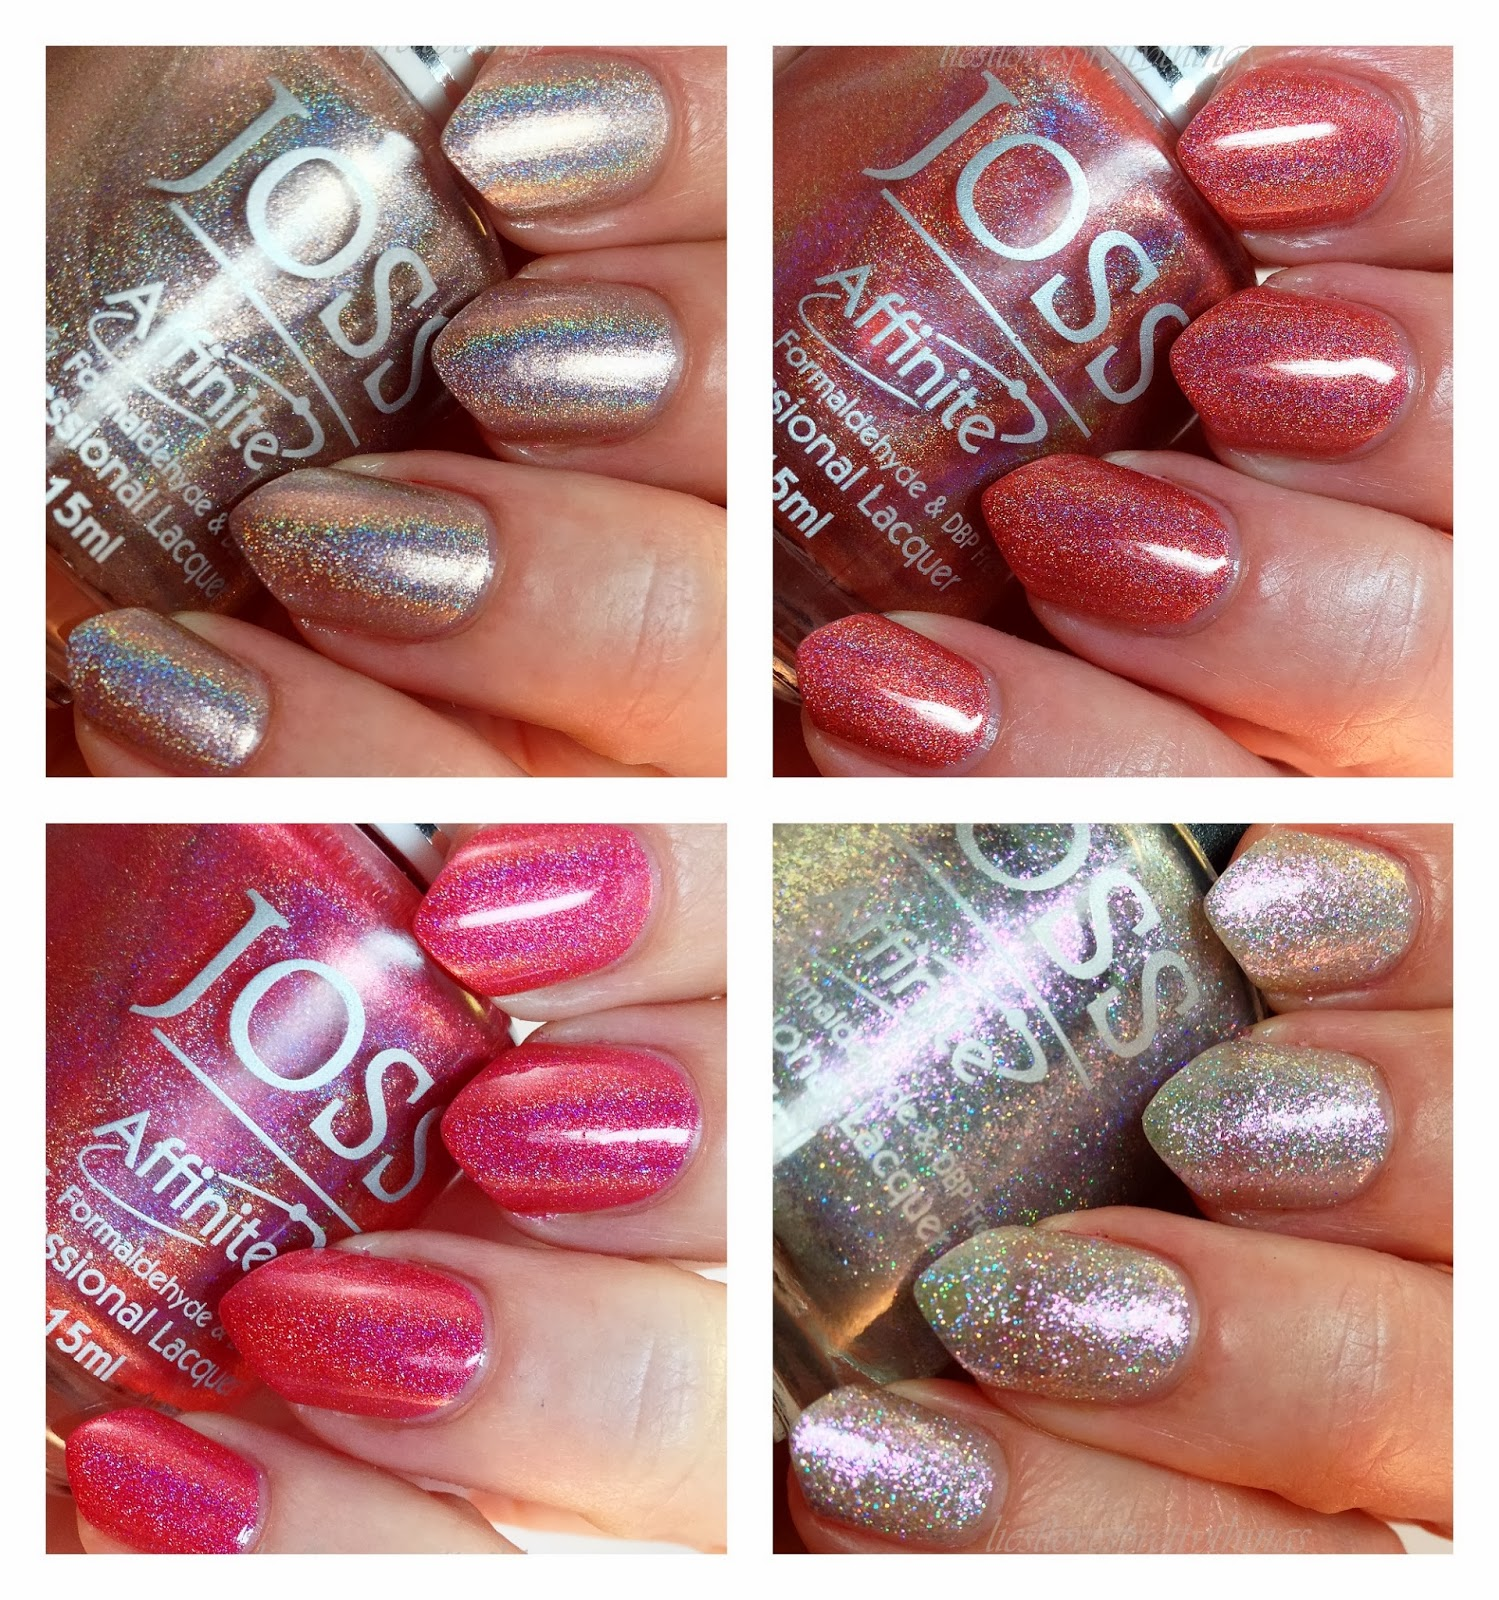 Joss Affinite swatches and review